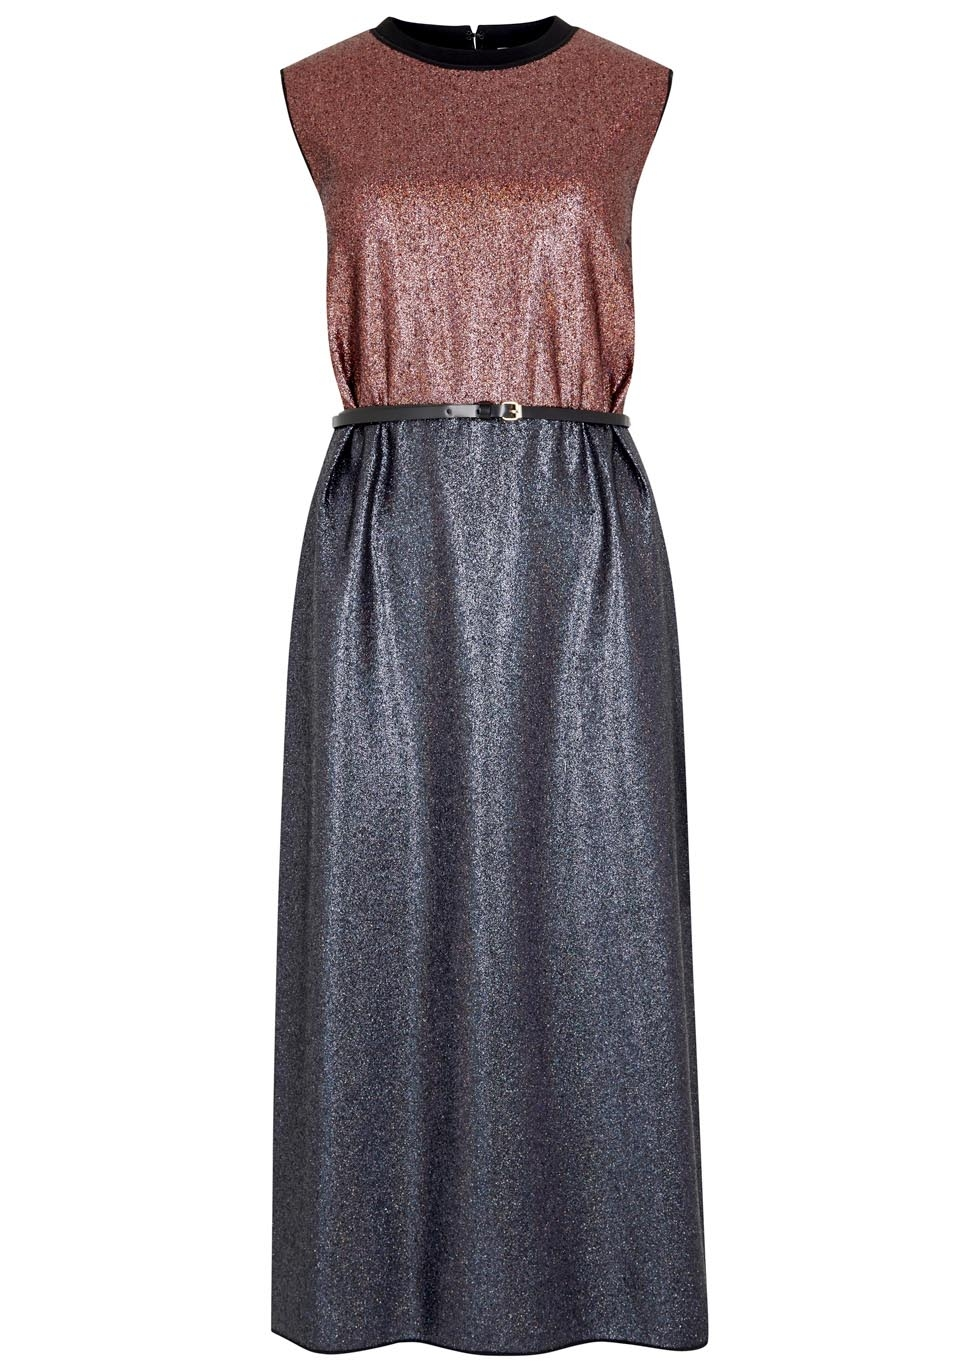 Two-tone belted lamé dress, 685, Victoria, Victoria Beckham. www.harveynichols.com